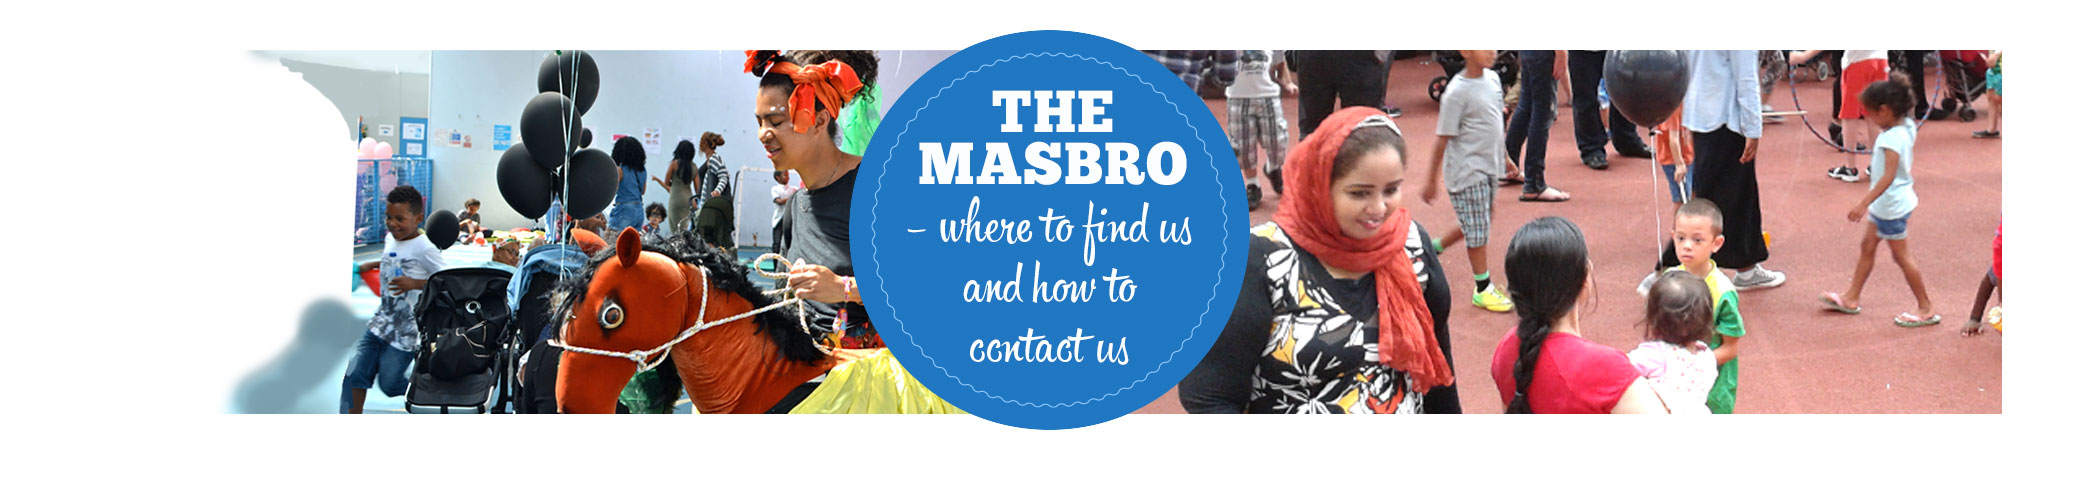 Masbro Contact page iphone banner